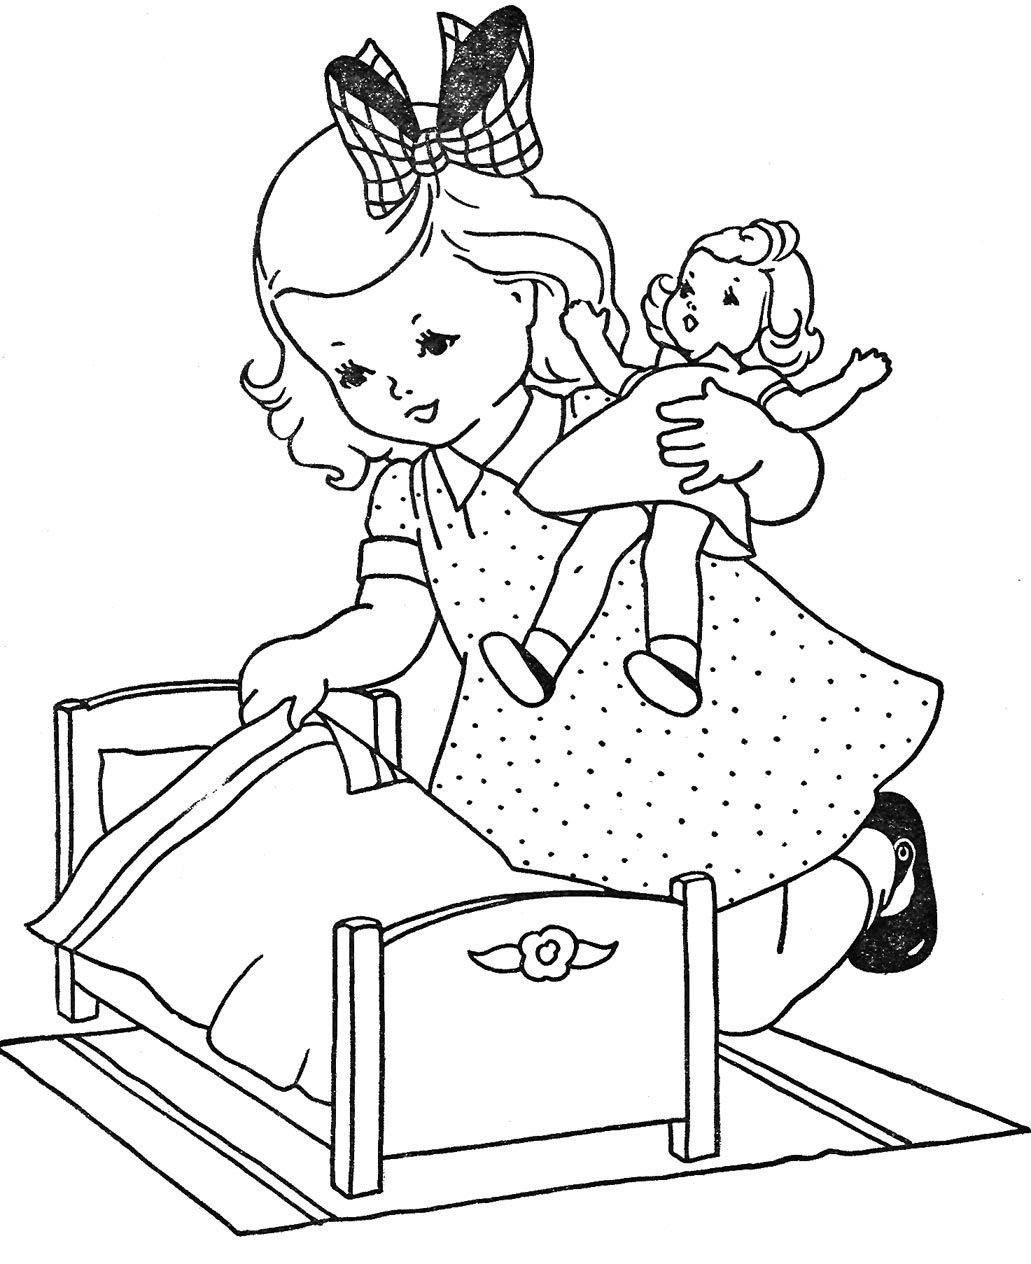 coloring printable pages for kids free printable tangled coloring pages for kids cool2bkids kids coloring for pages printable